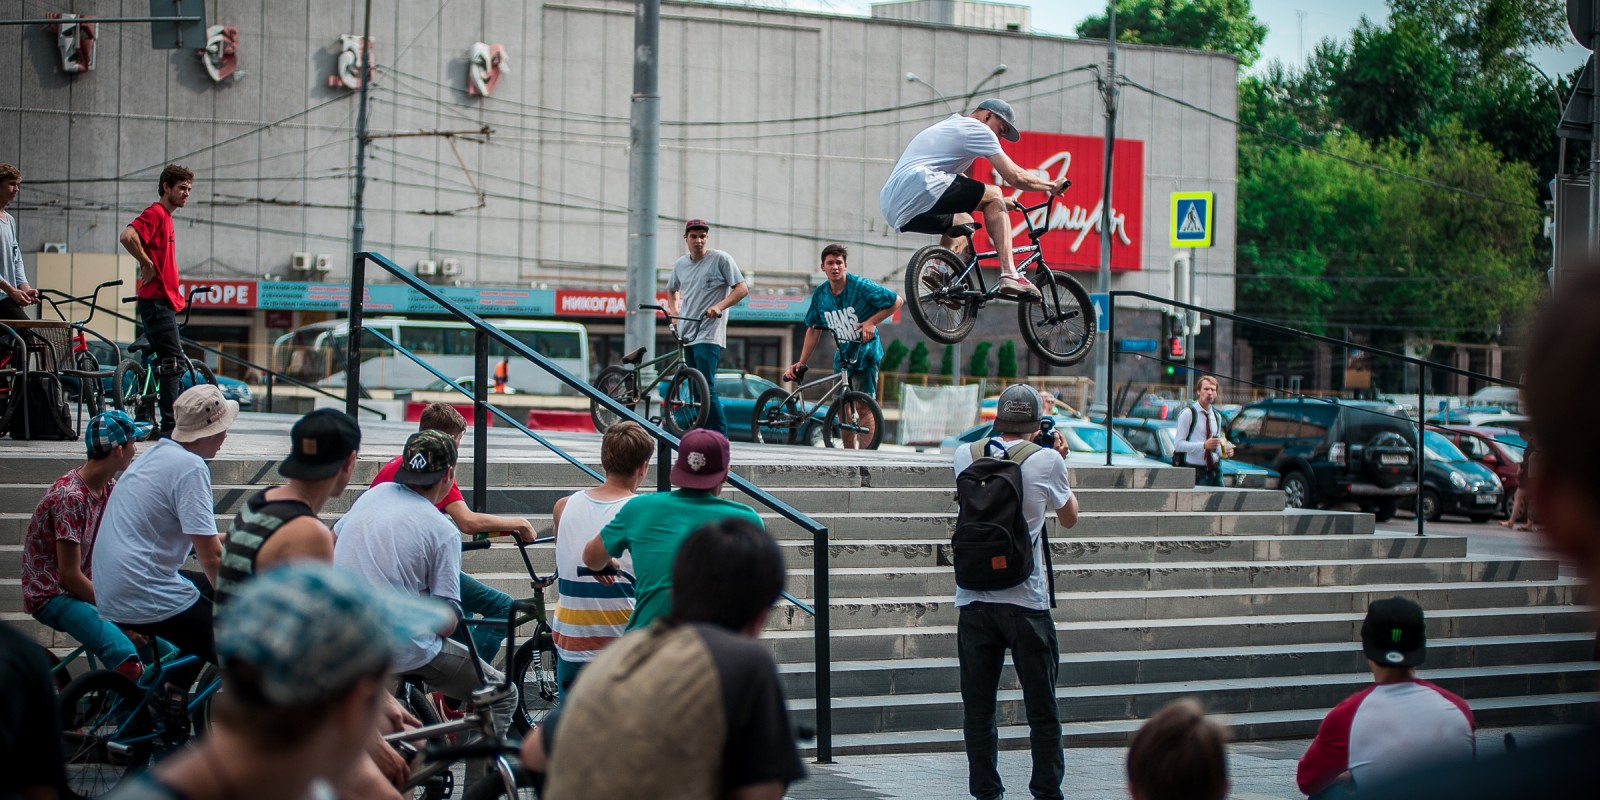 BMX riders take the streest for BMXDAY in Moscow